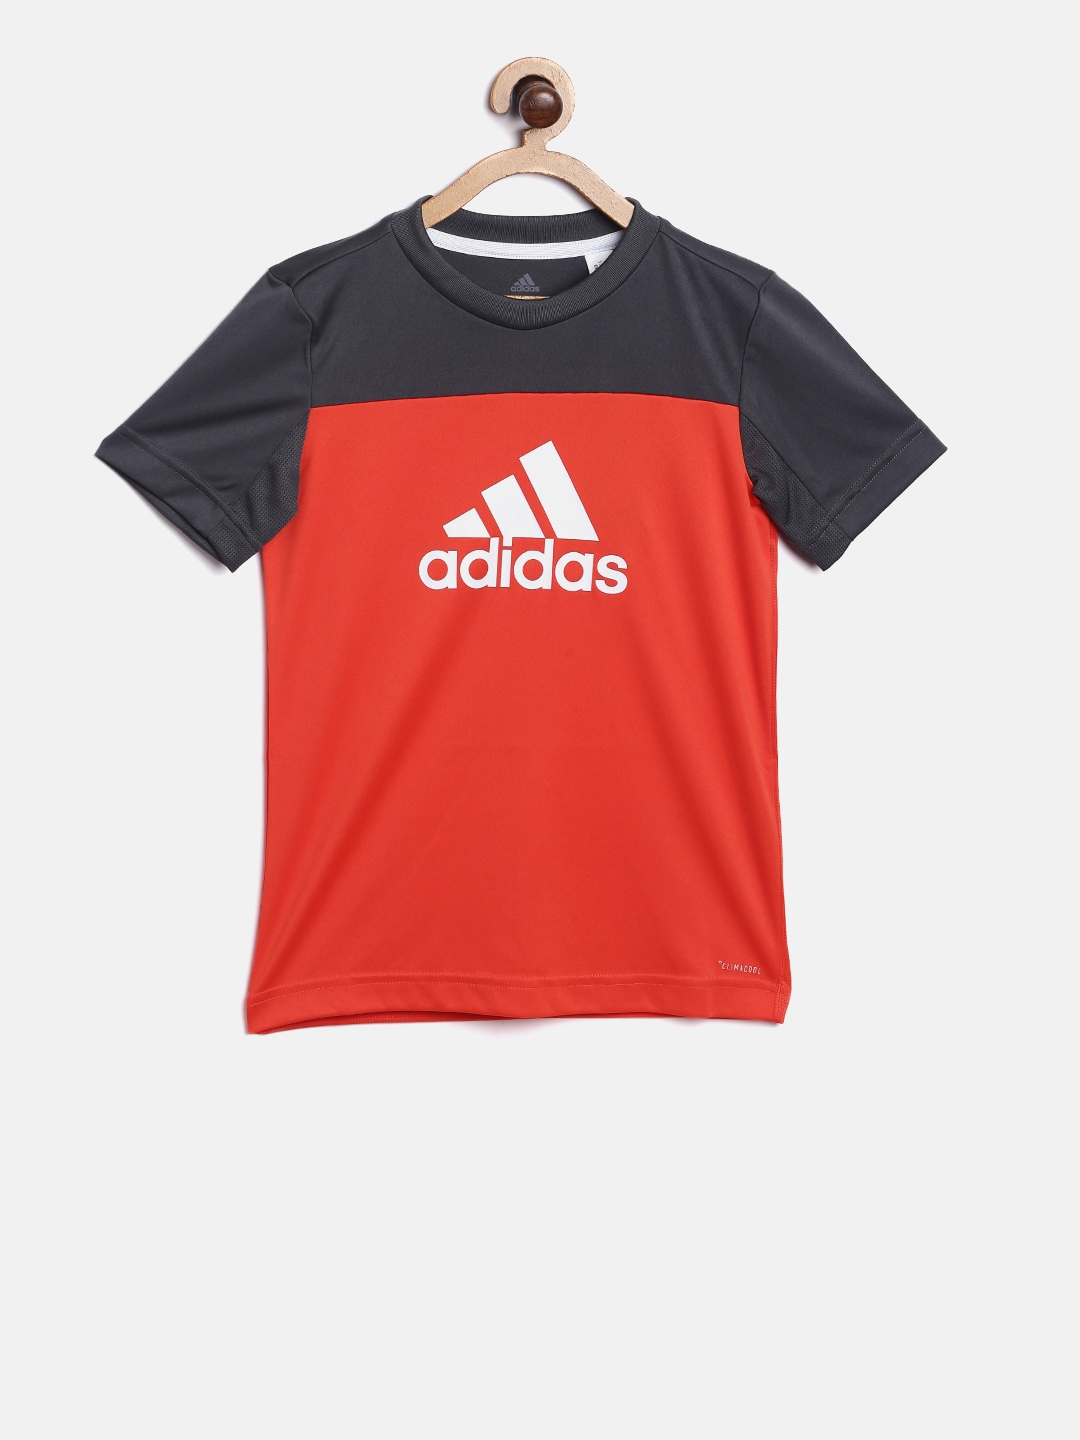 huge selection of 1f5f1 c7023 adidas - Exclusive adidas Online Store in India at Myntra